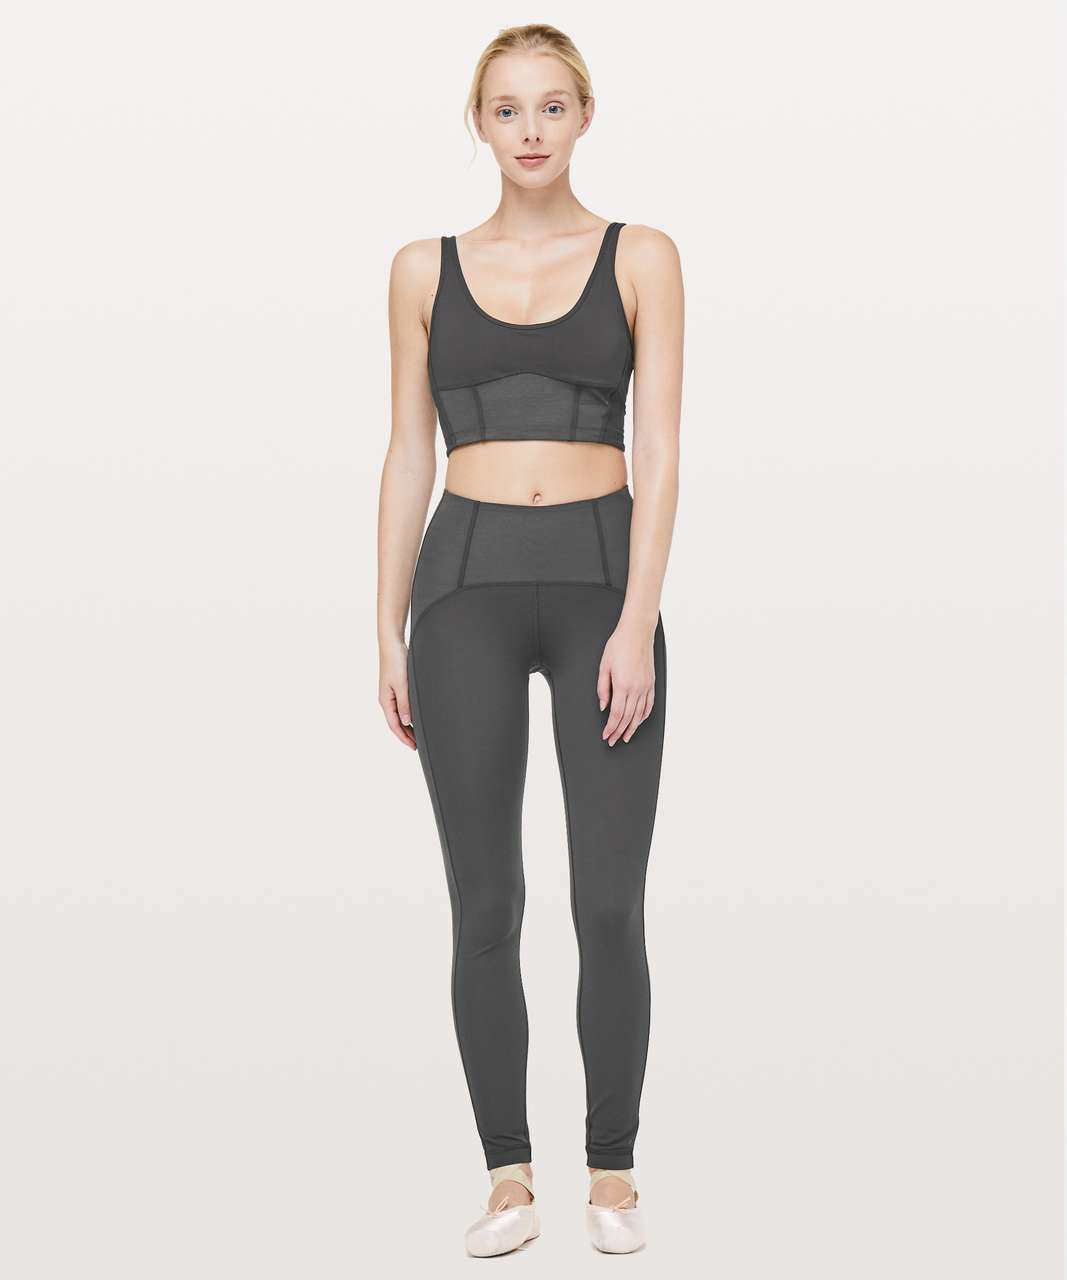 "Lululemon Principal Dancer Corsetry Tight *28"" - Soot"